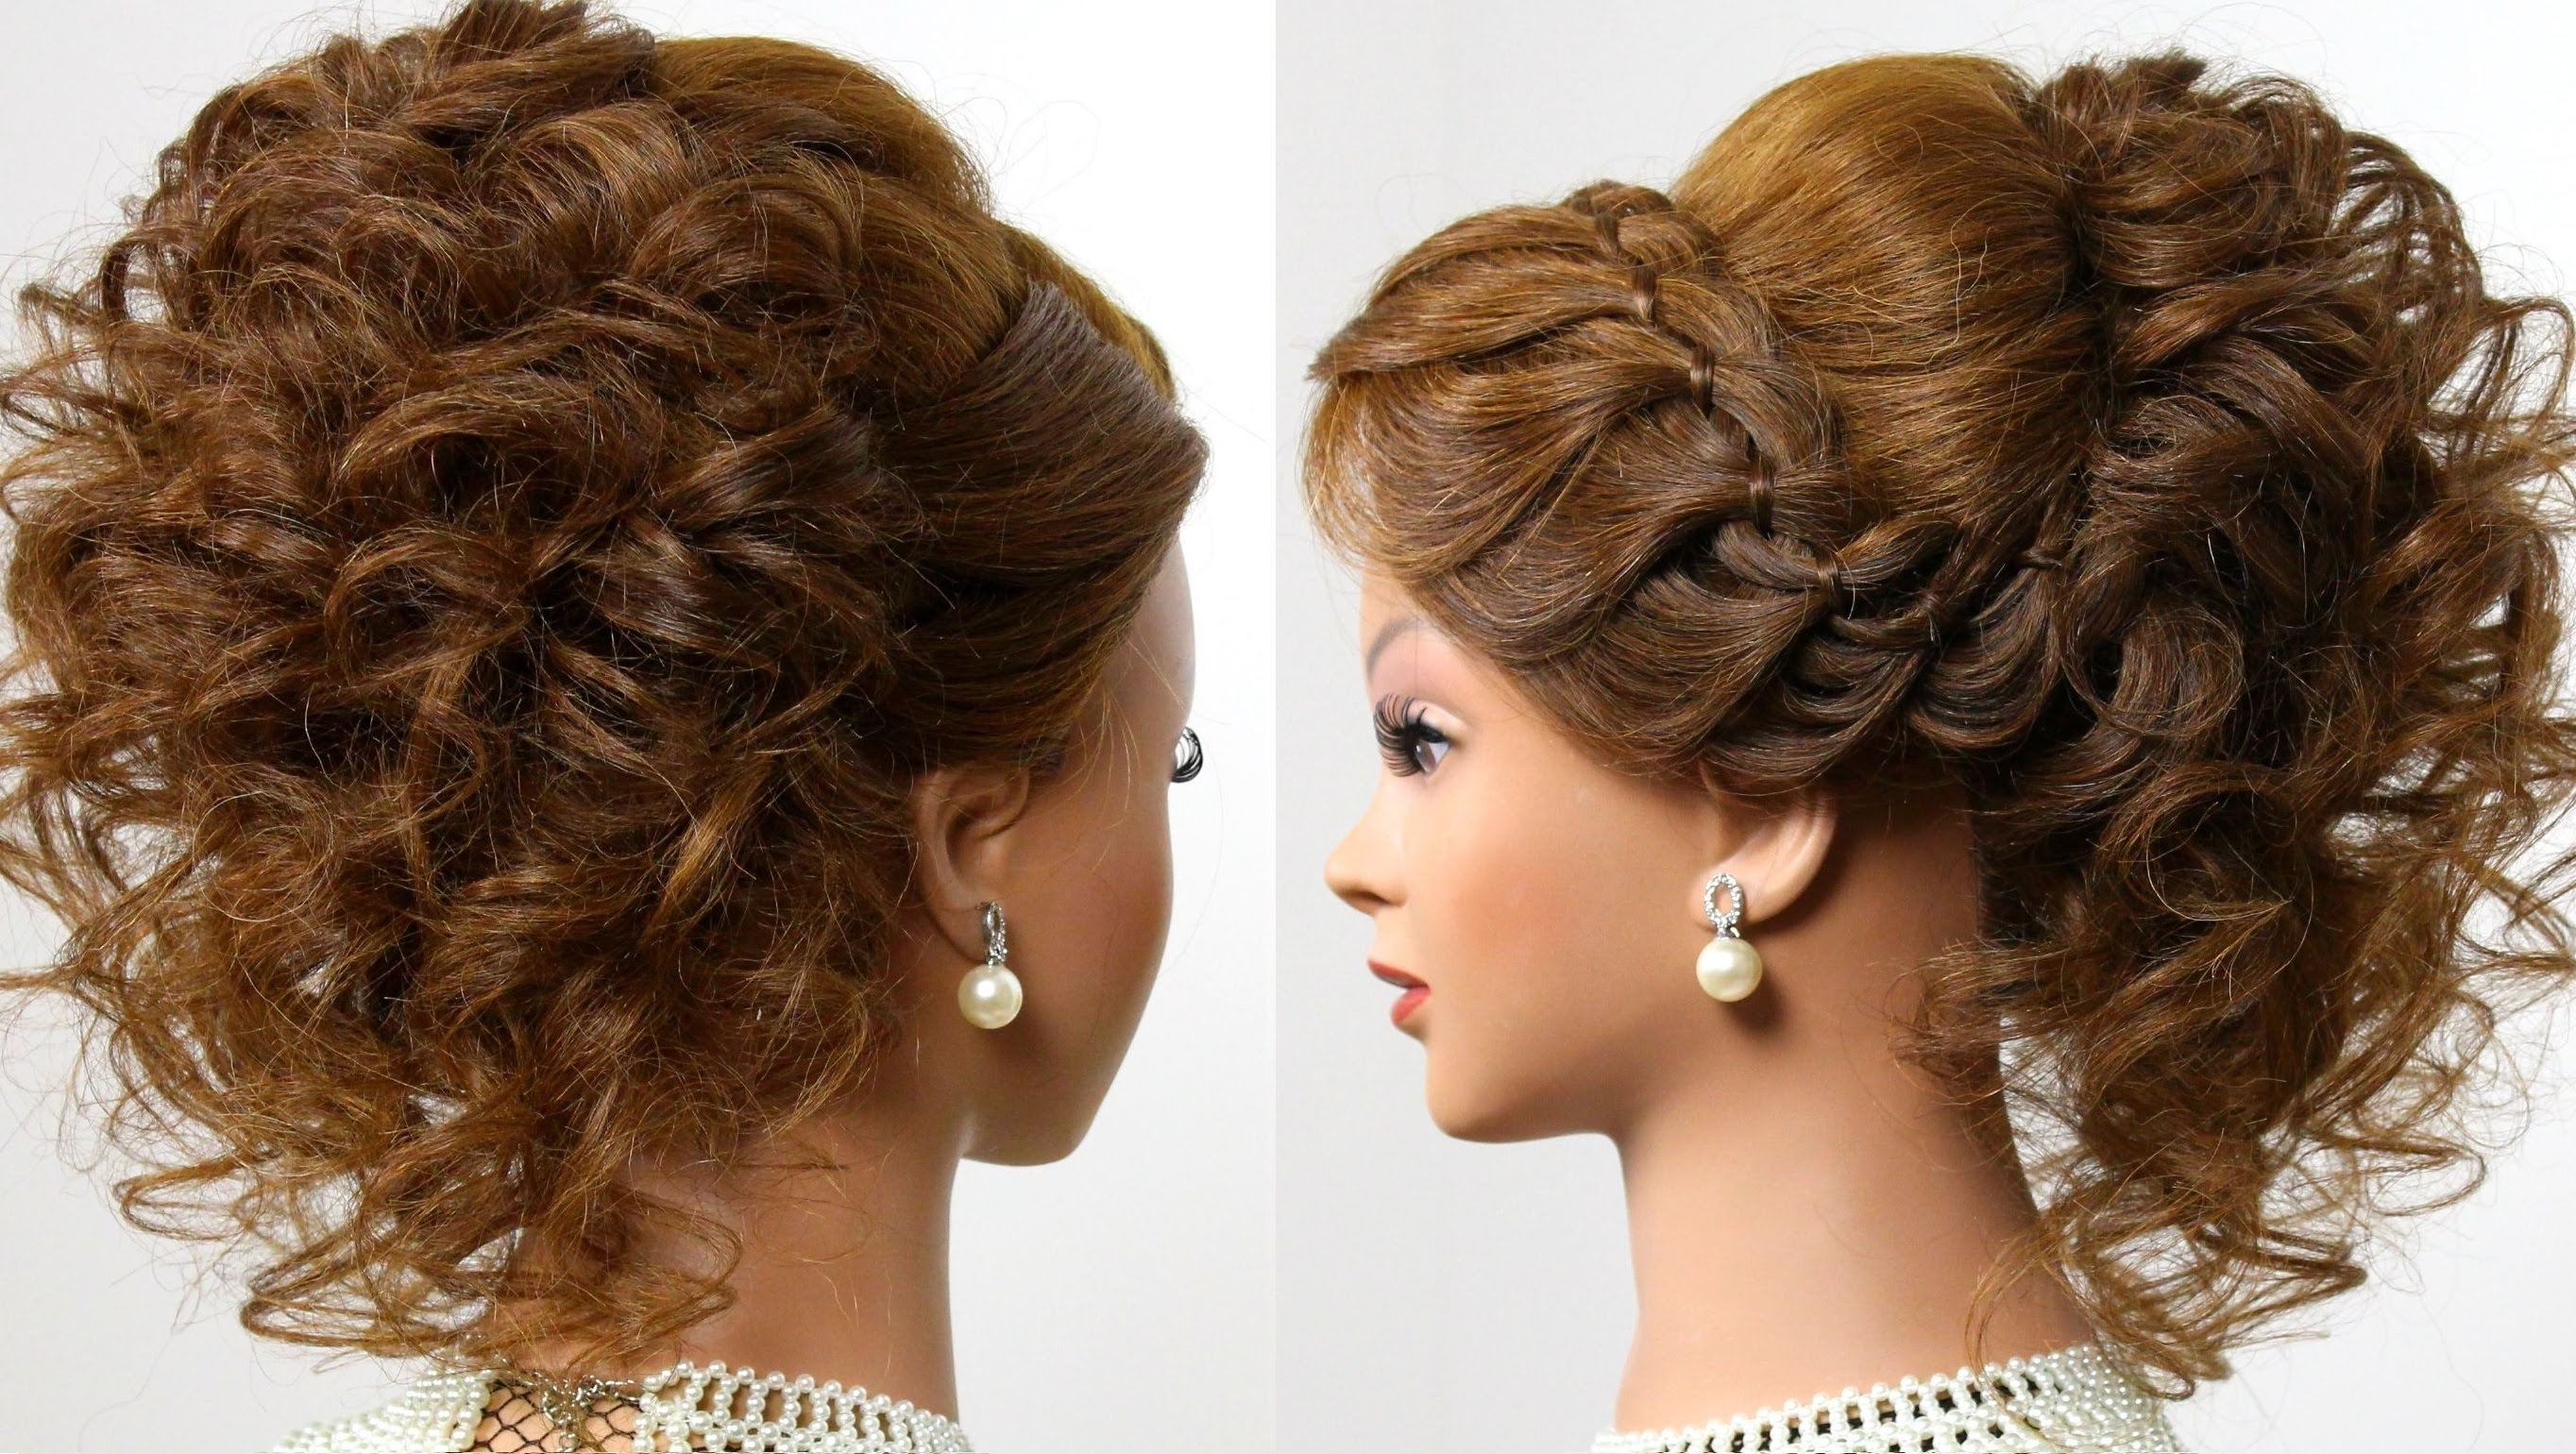 Curly Wedding Prom Hairstyle For Long Hair Sensational Romantic Inside Hair Extensions Updo Hairstyles (View 10 of 15)